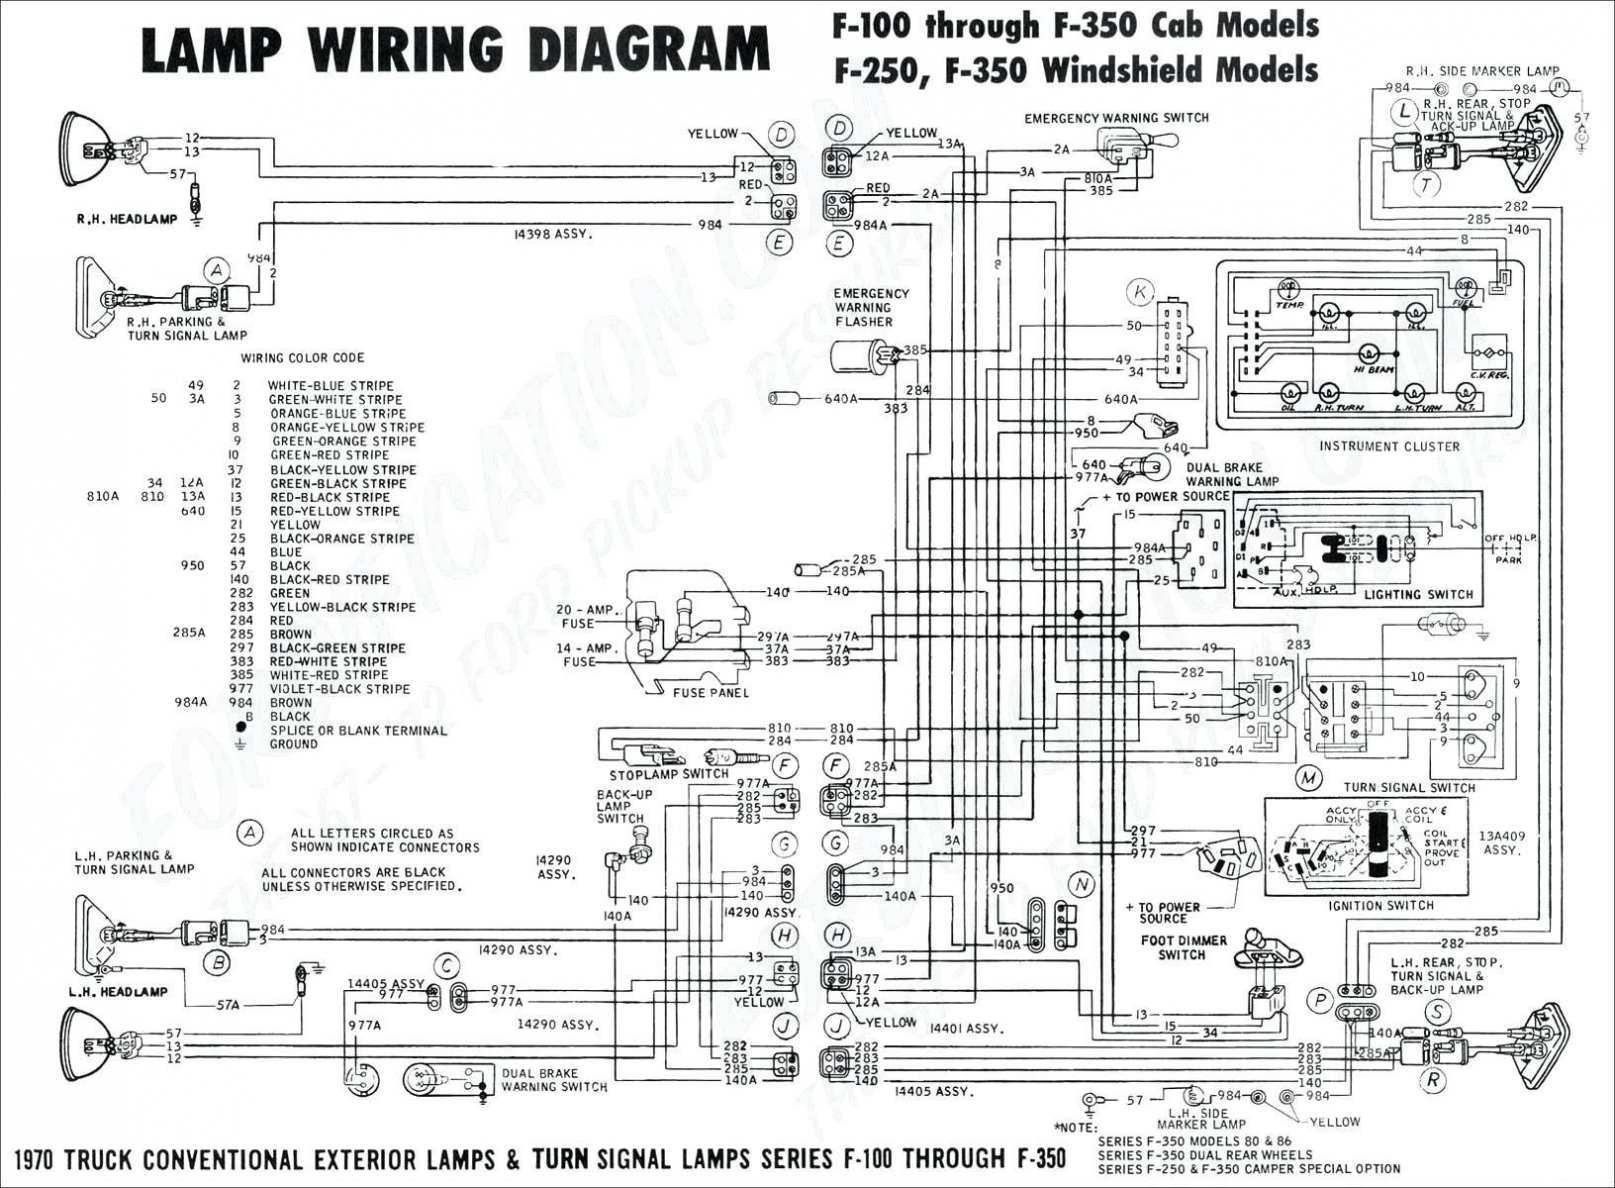 hight resolution of 82 corvette fuse panel diagram free download wiring diagram 1982 corvette fuse panel diagram 1982 corvette fuse panel diagram